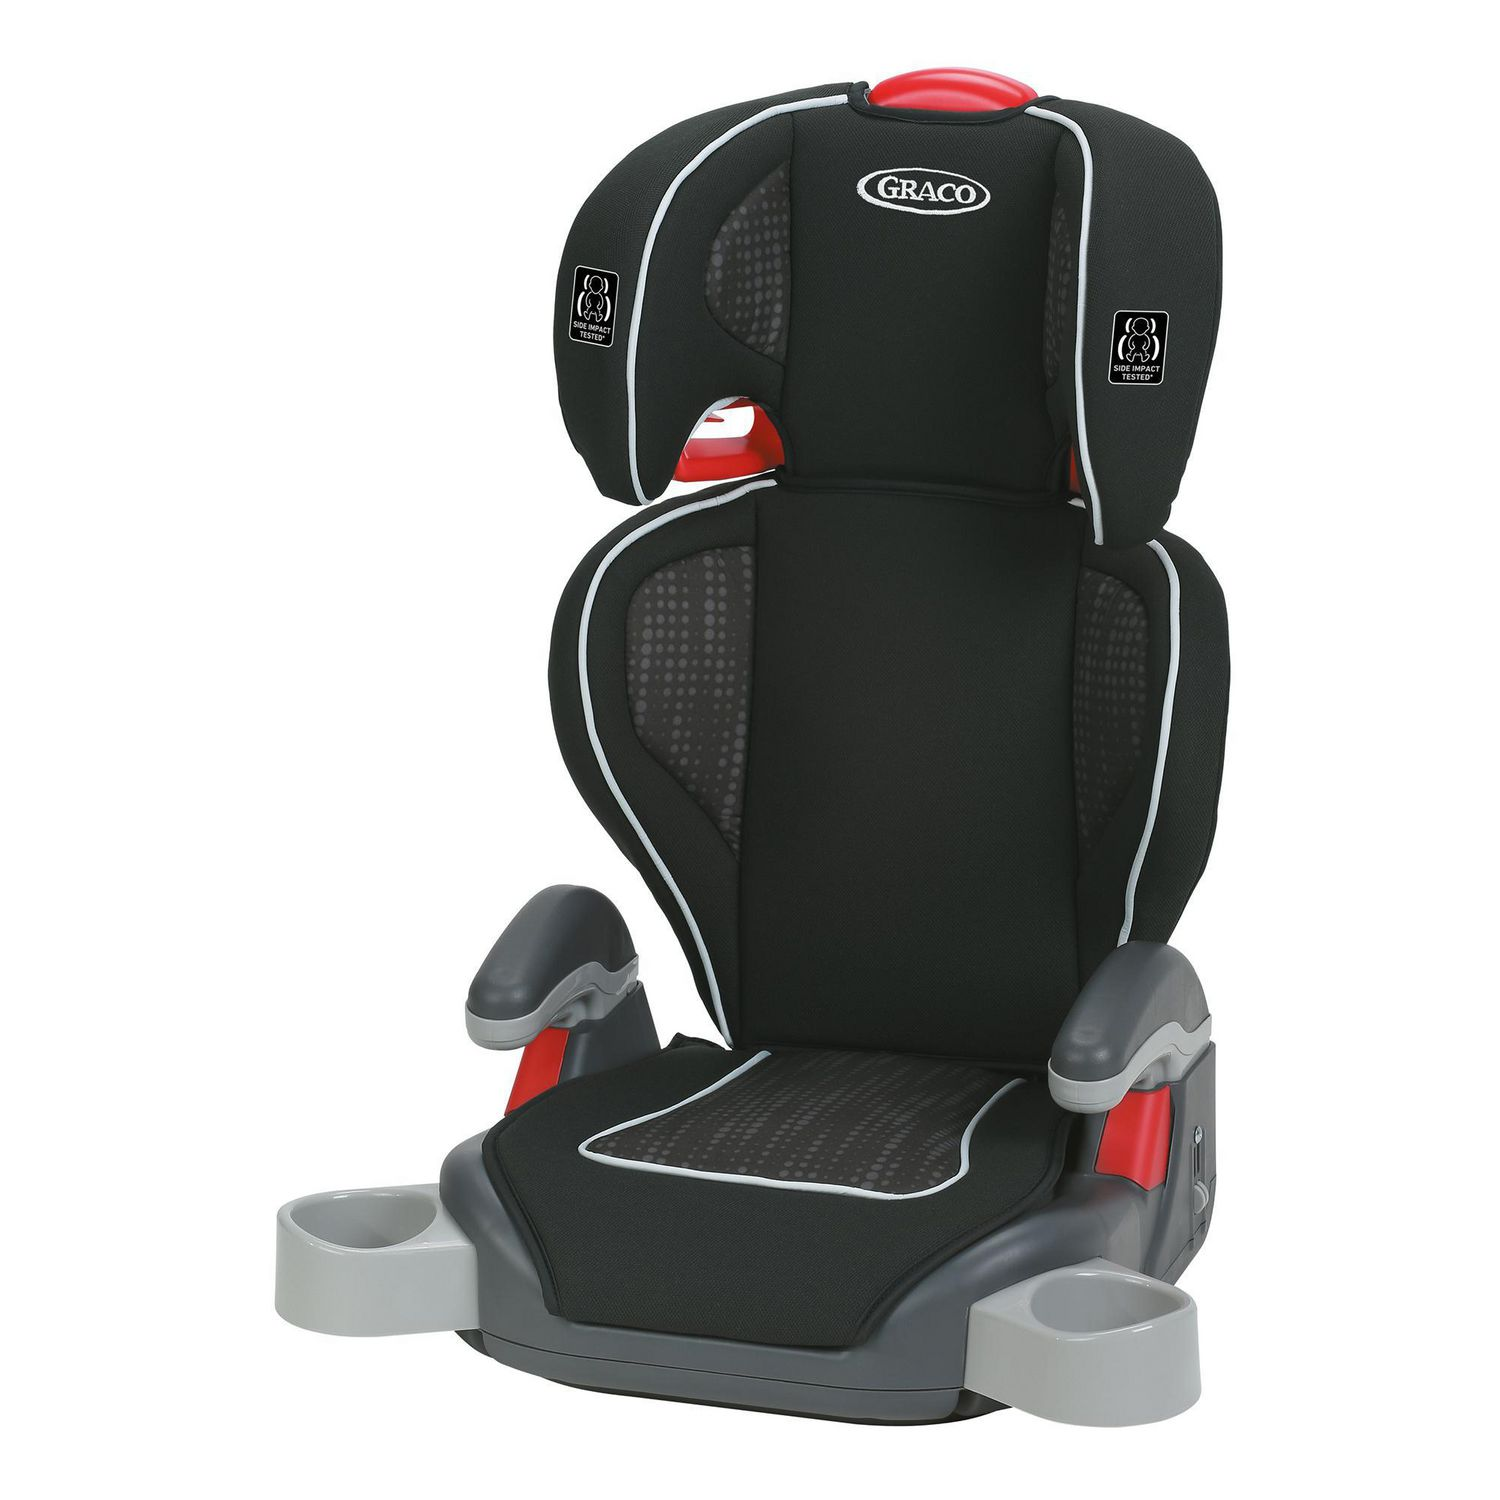 Black Graco TurboBooster booster seat with red accents and dual cup holders - best booster car seat